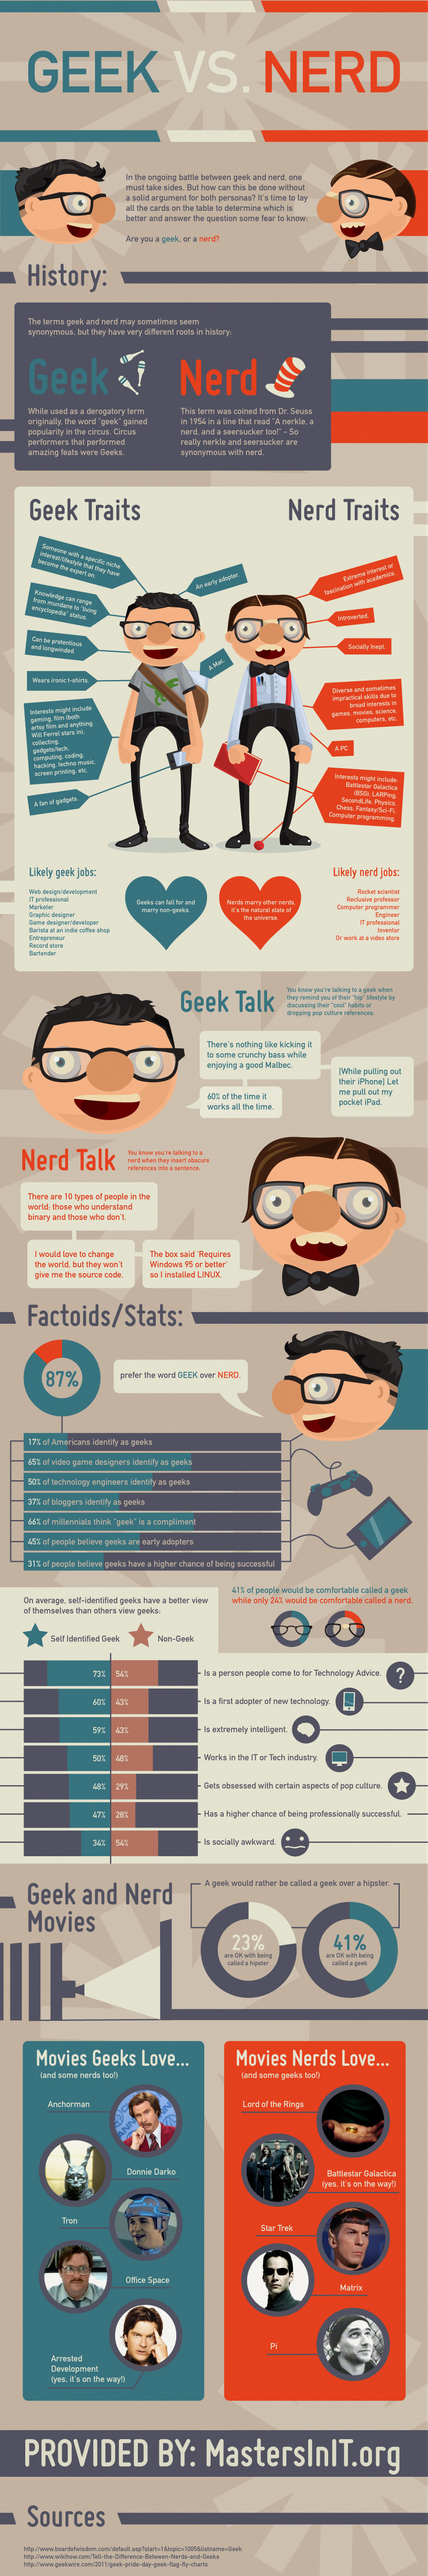 Geeks vs Nerds Infographic